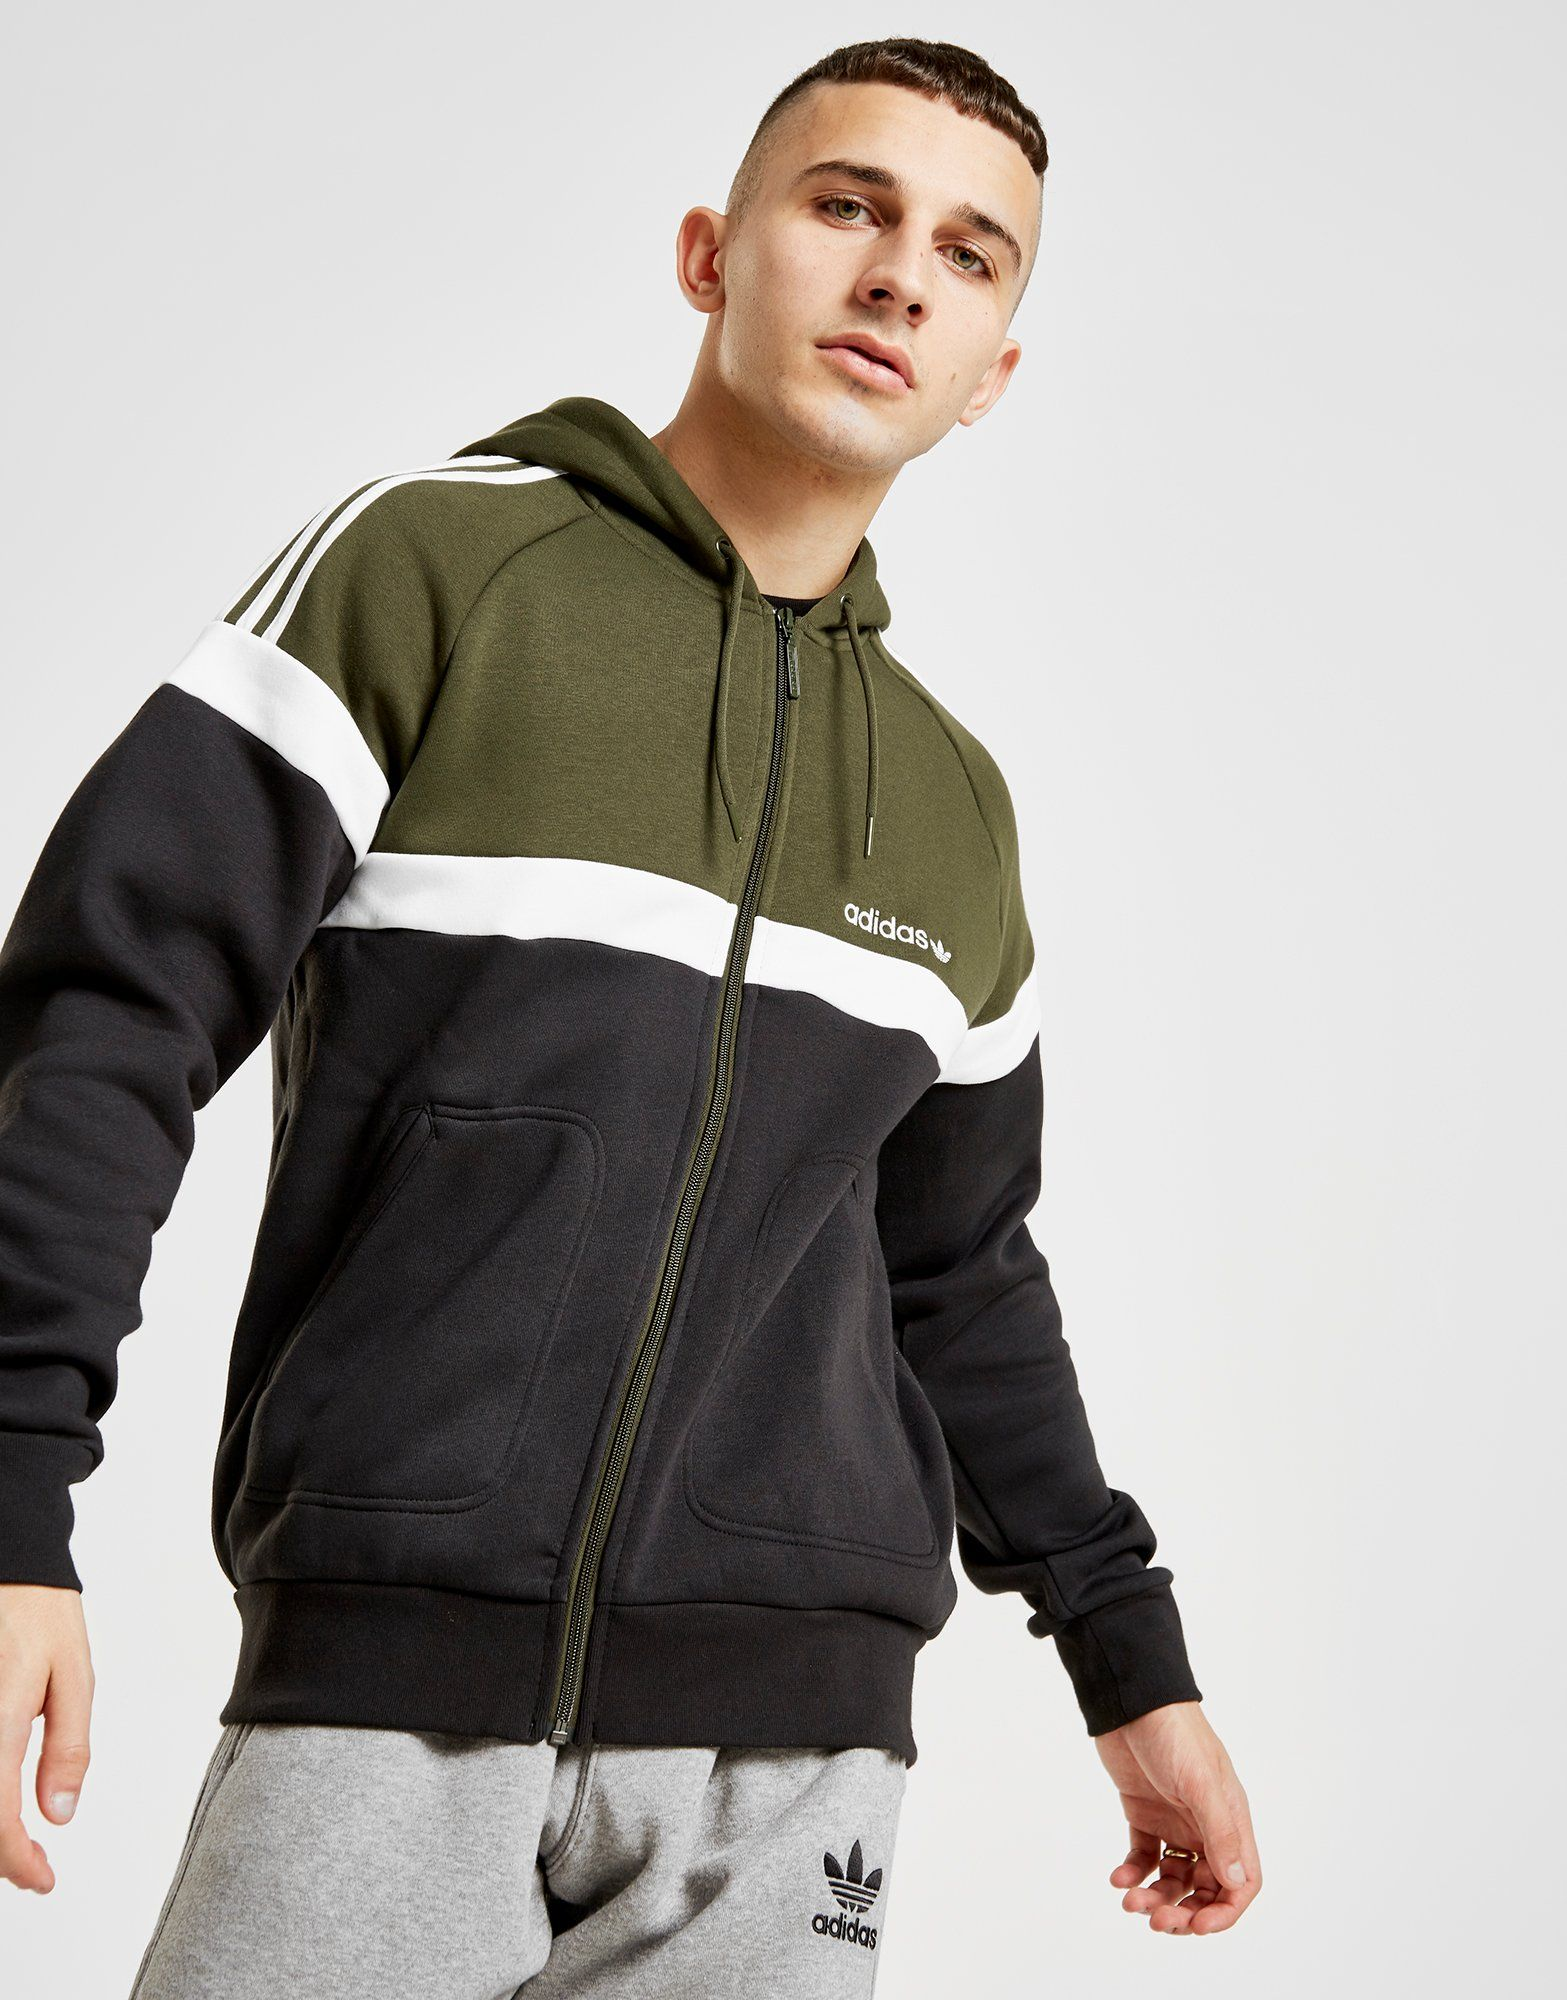 Adidas Originals Itasca Full Zip Hoodie Jd Sports